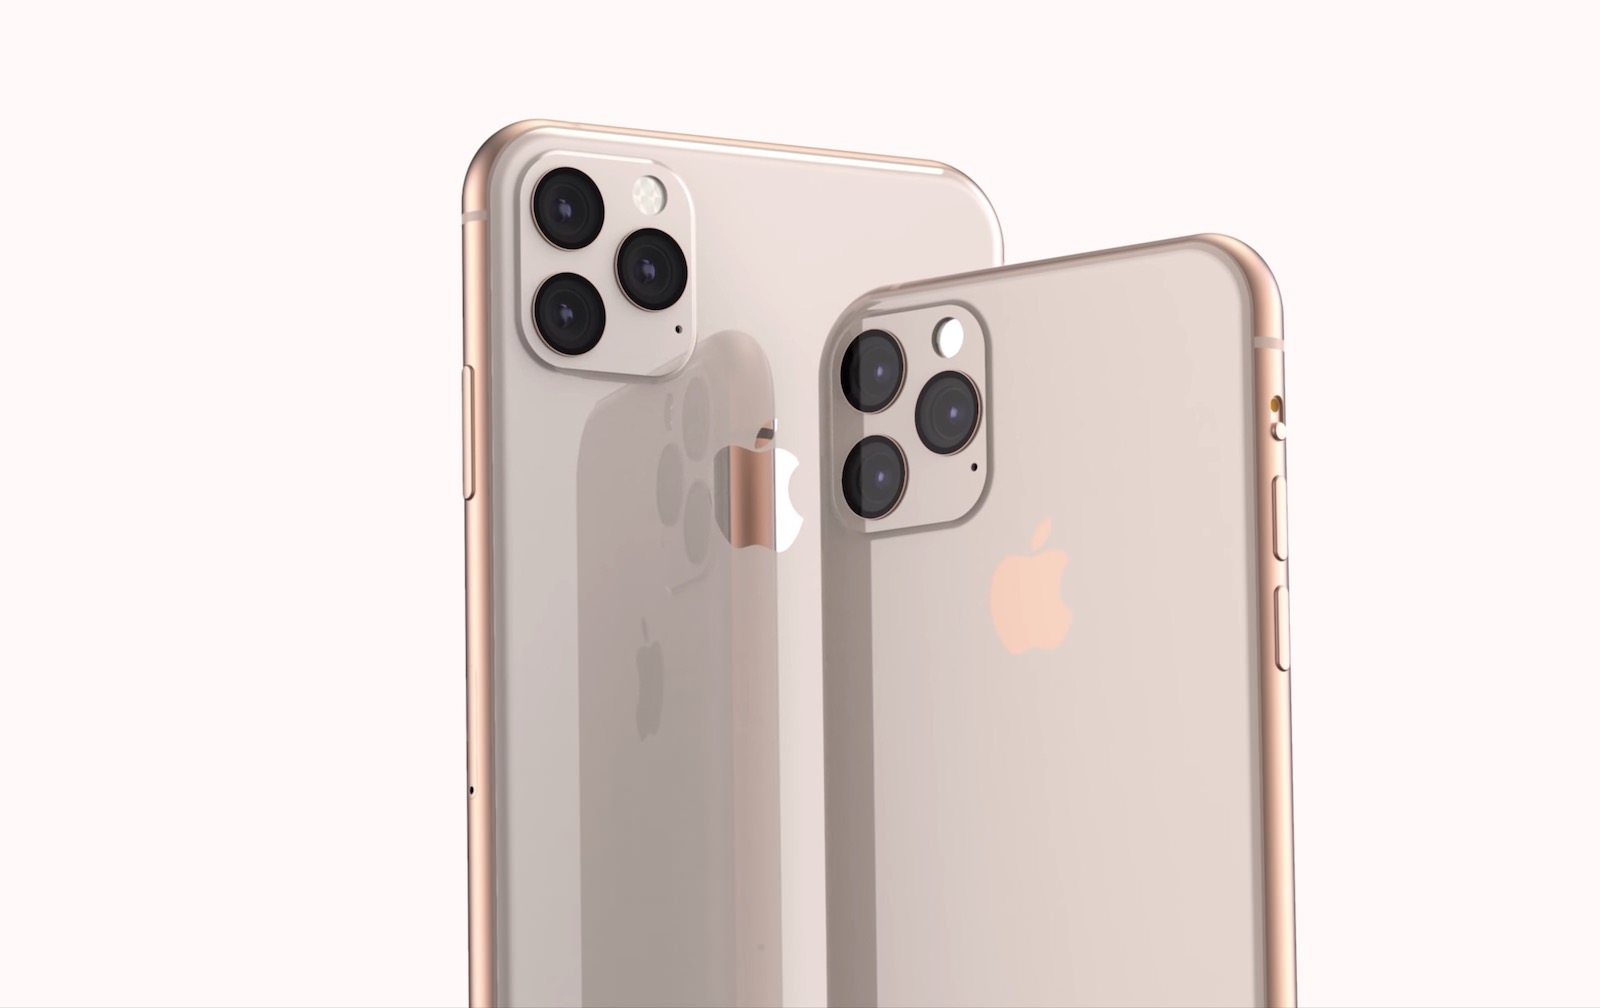 Iphone 11 pro concept models